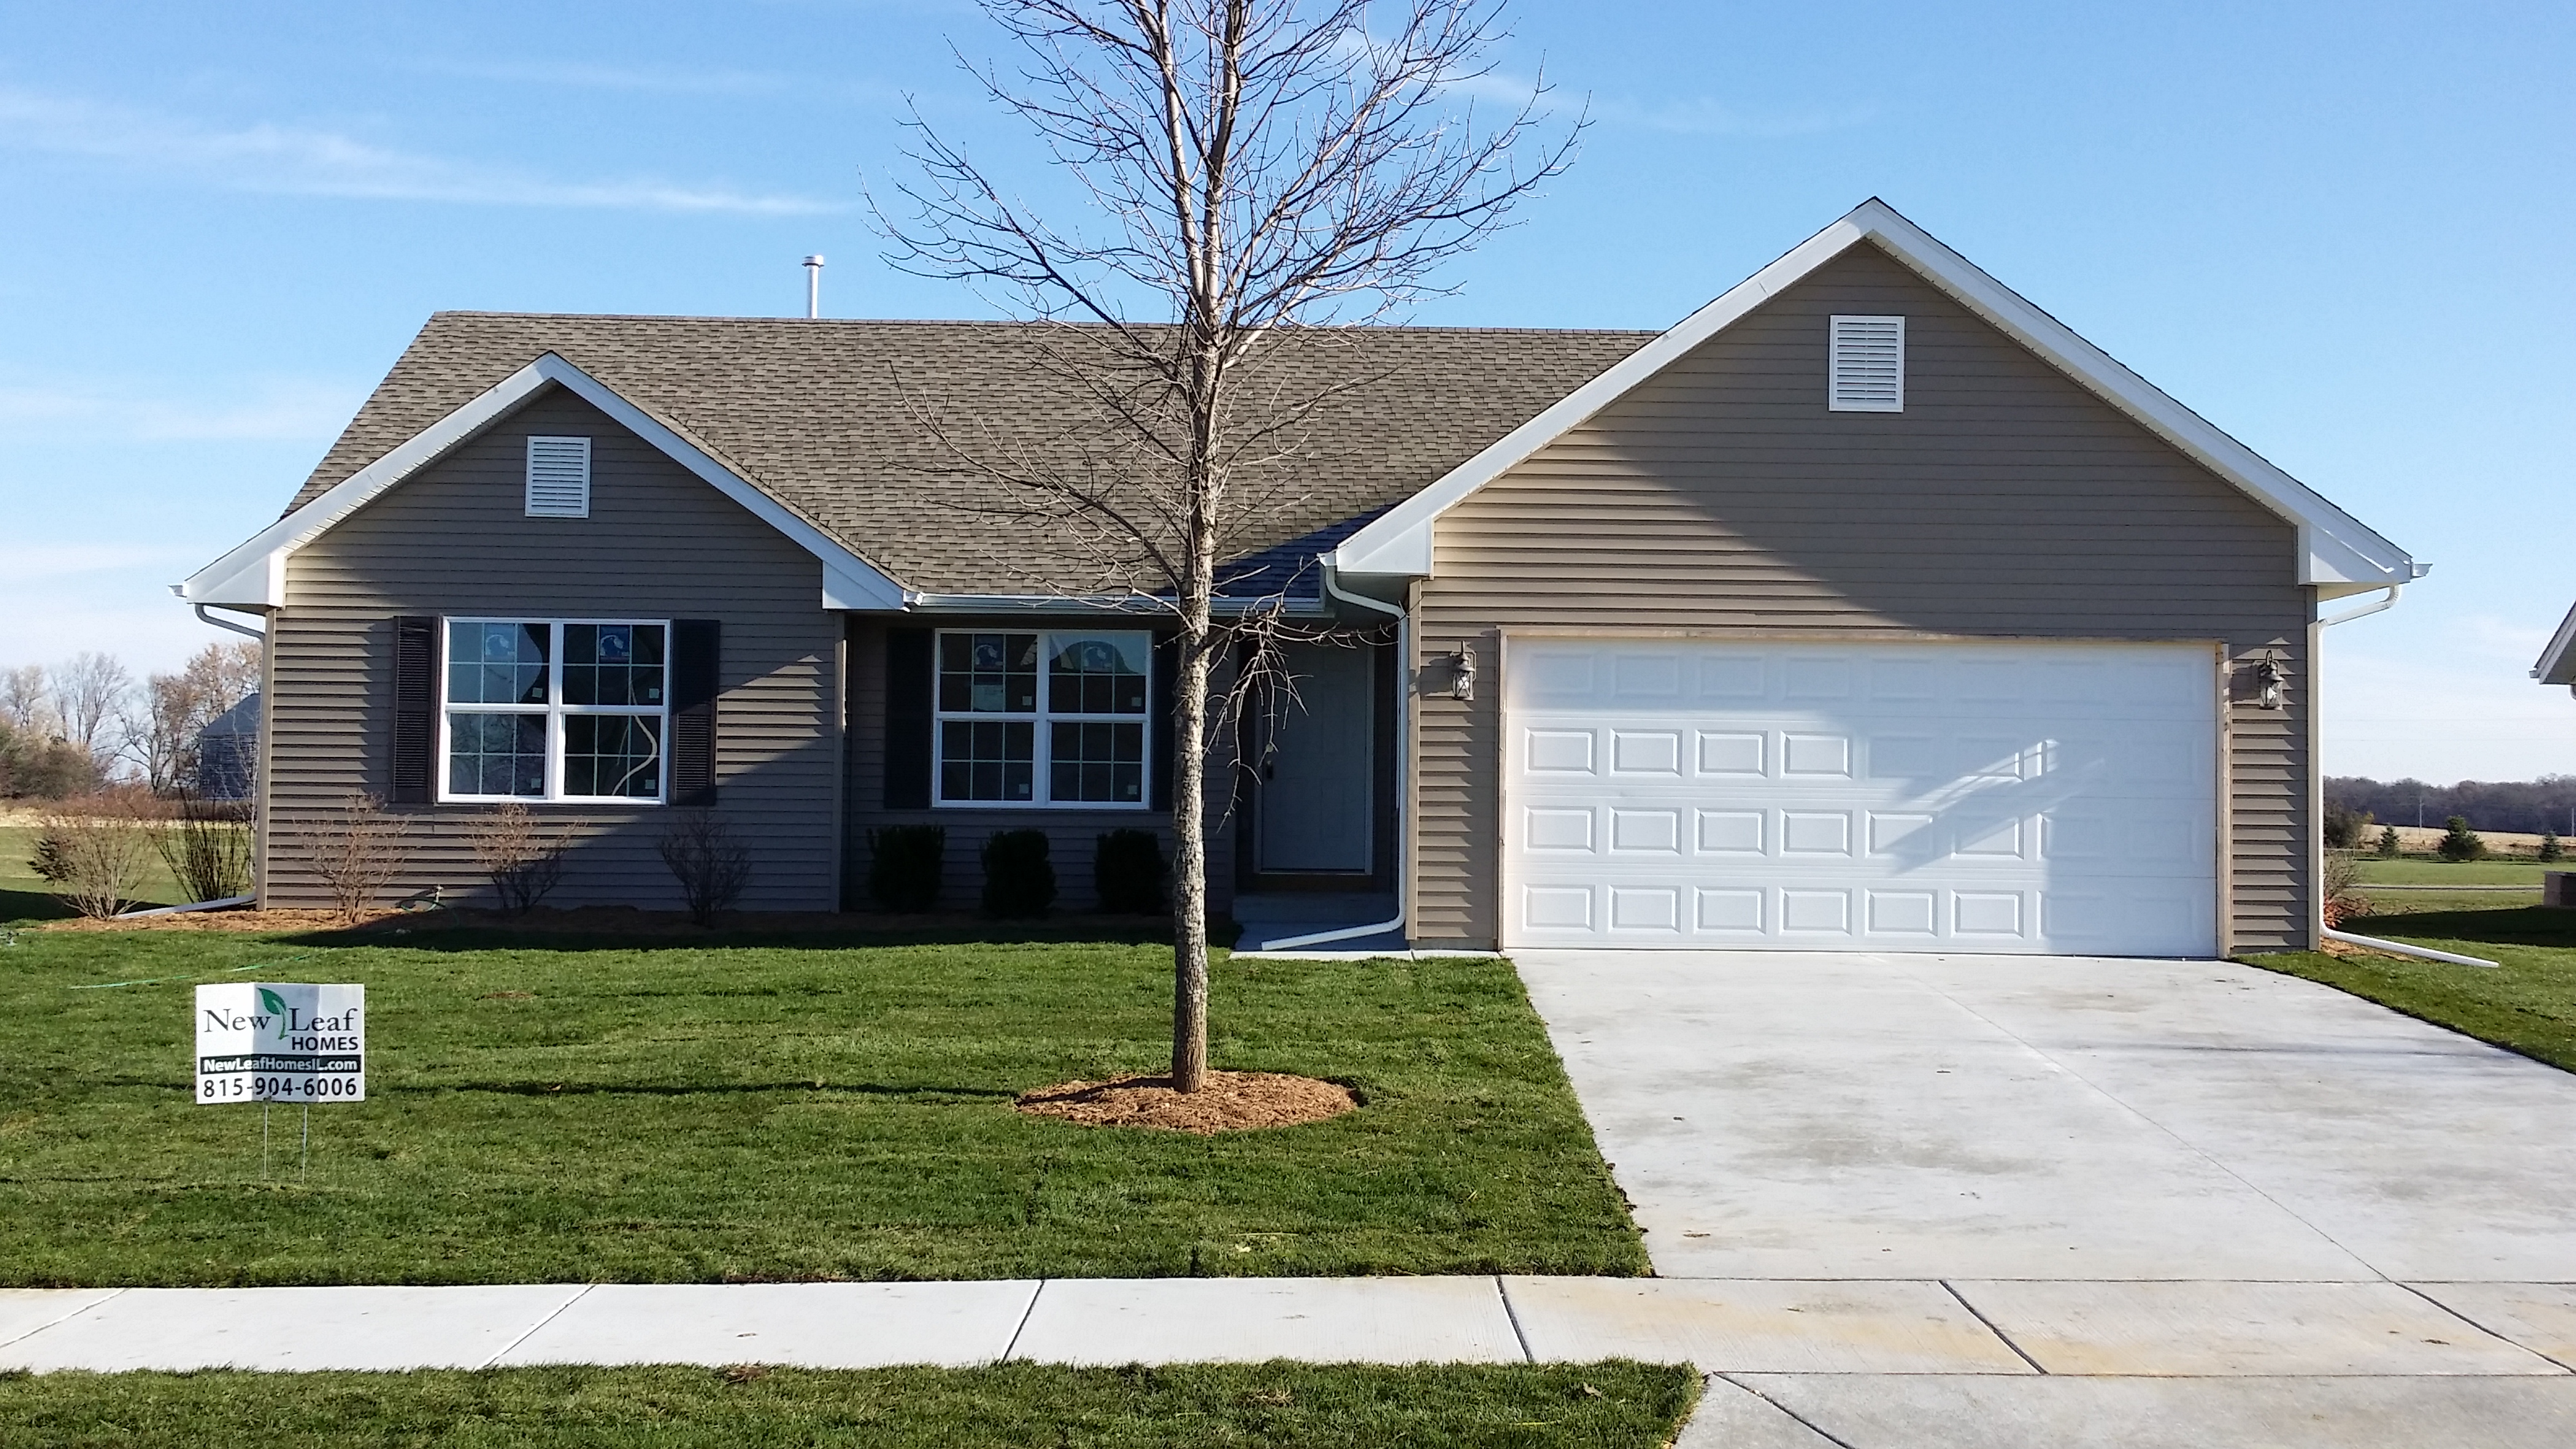 These custom home builders provide thoughtful and innovative custom house floor plans that support a simple and fulfilling lifestyle for individuals seeking